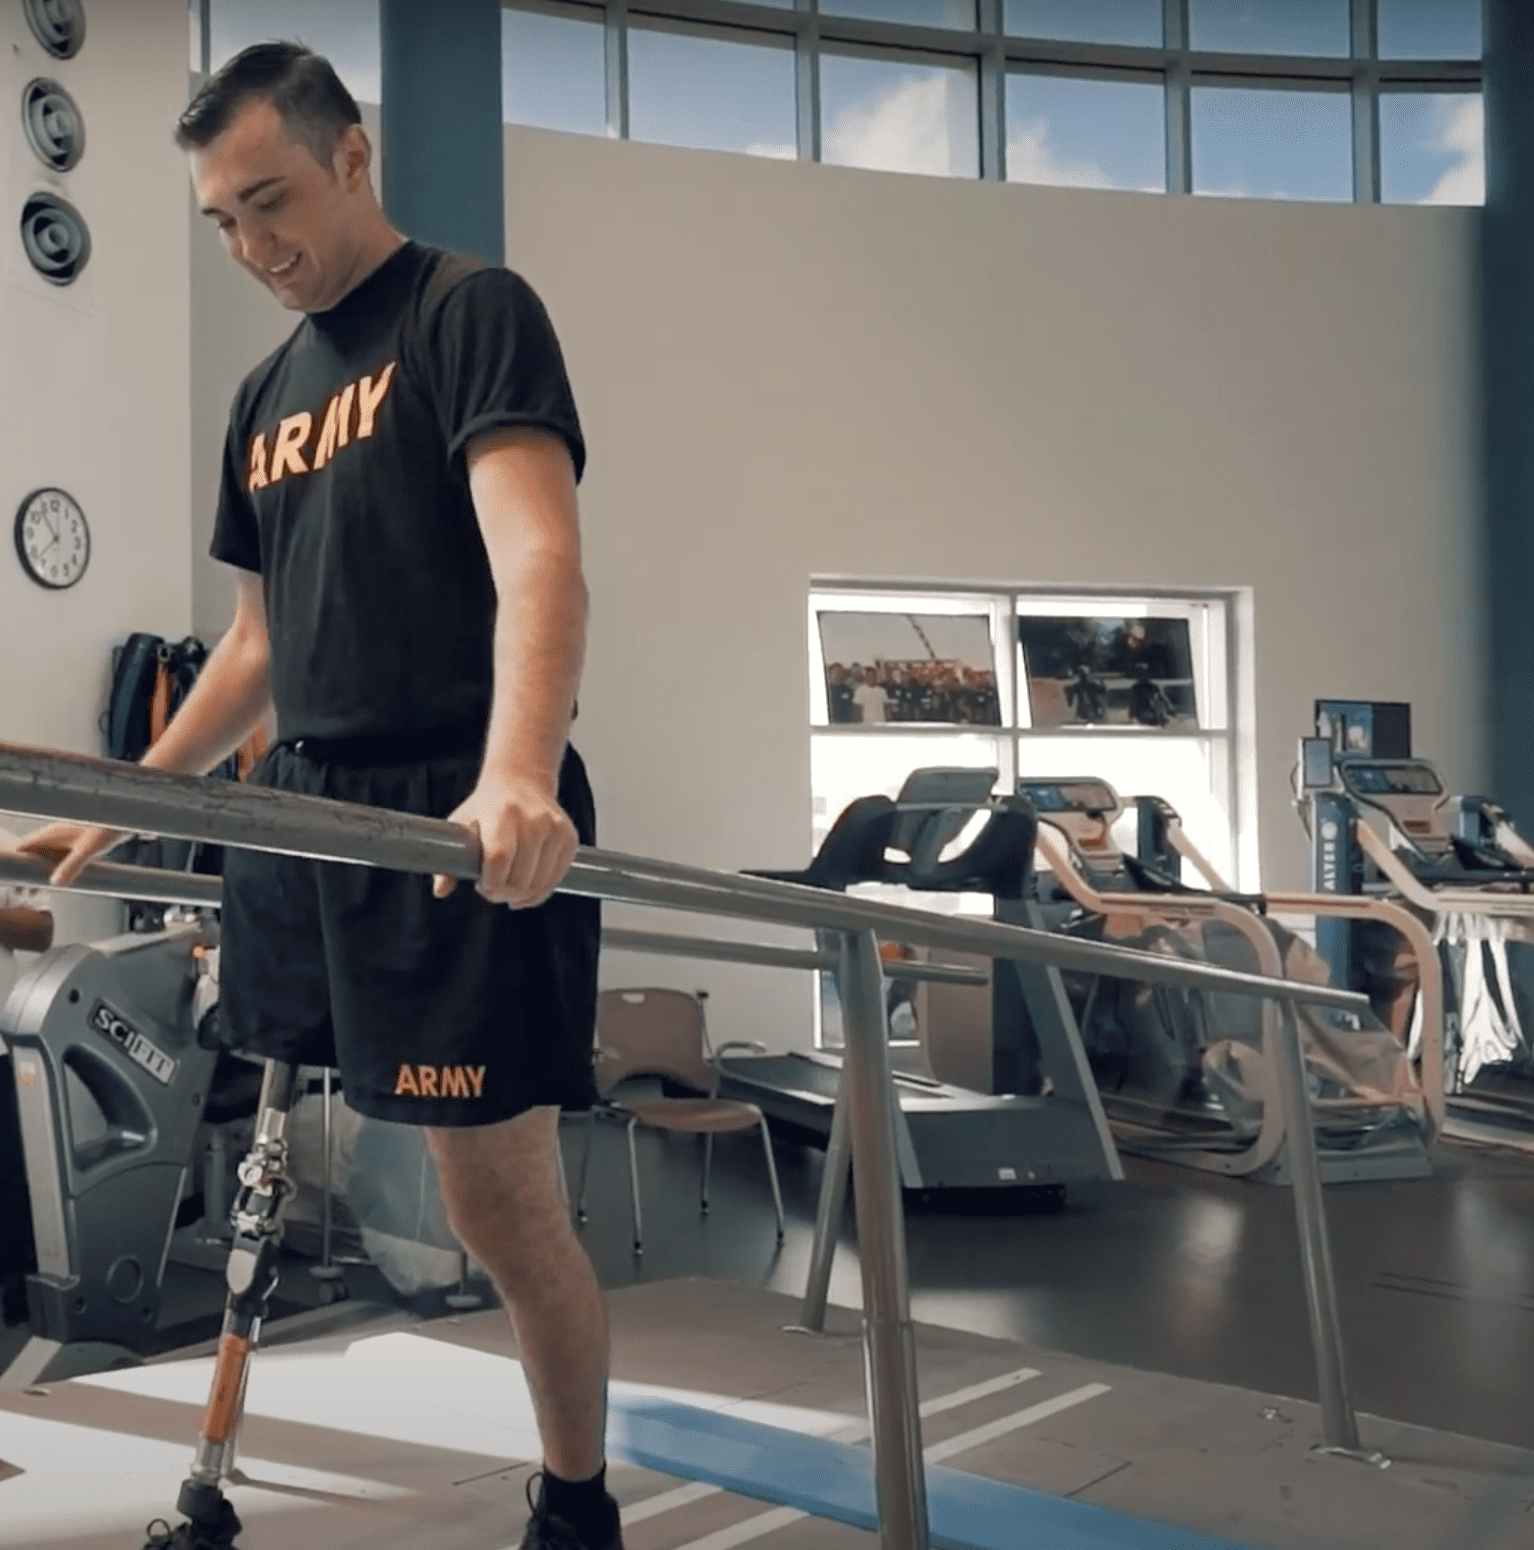 Solider who lost his leg while saving his crew is in the process of rehabilitation for his injuries | Photo: Youtube/Brooke Army Medical Center